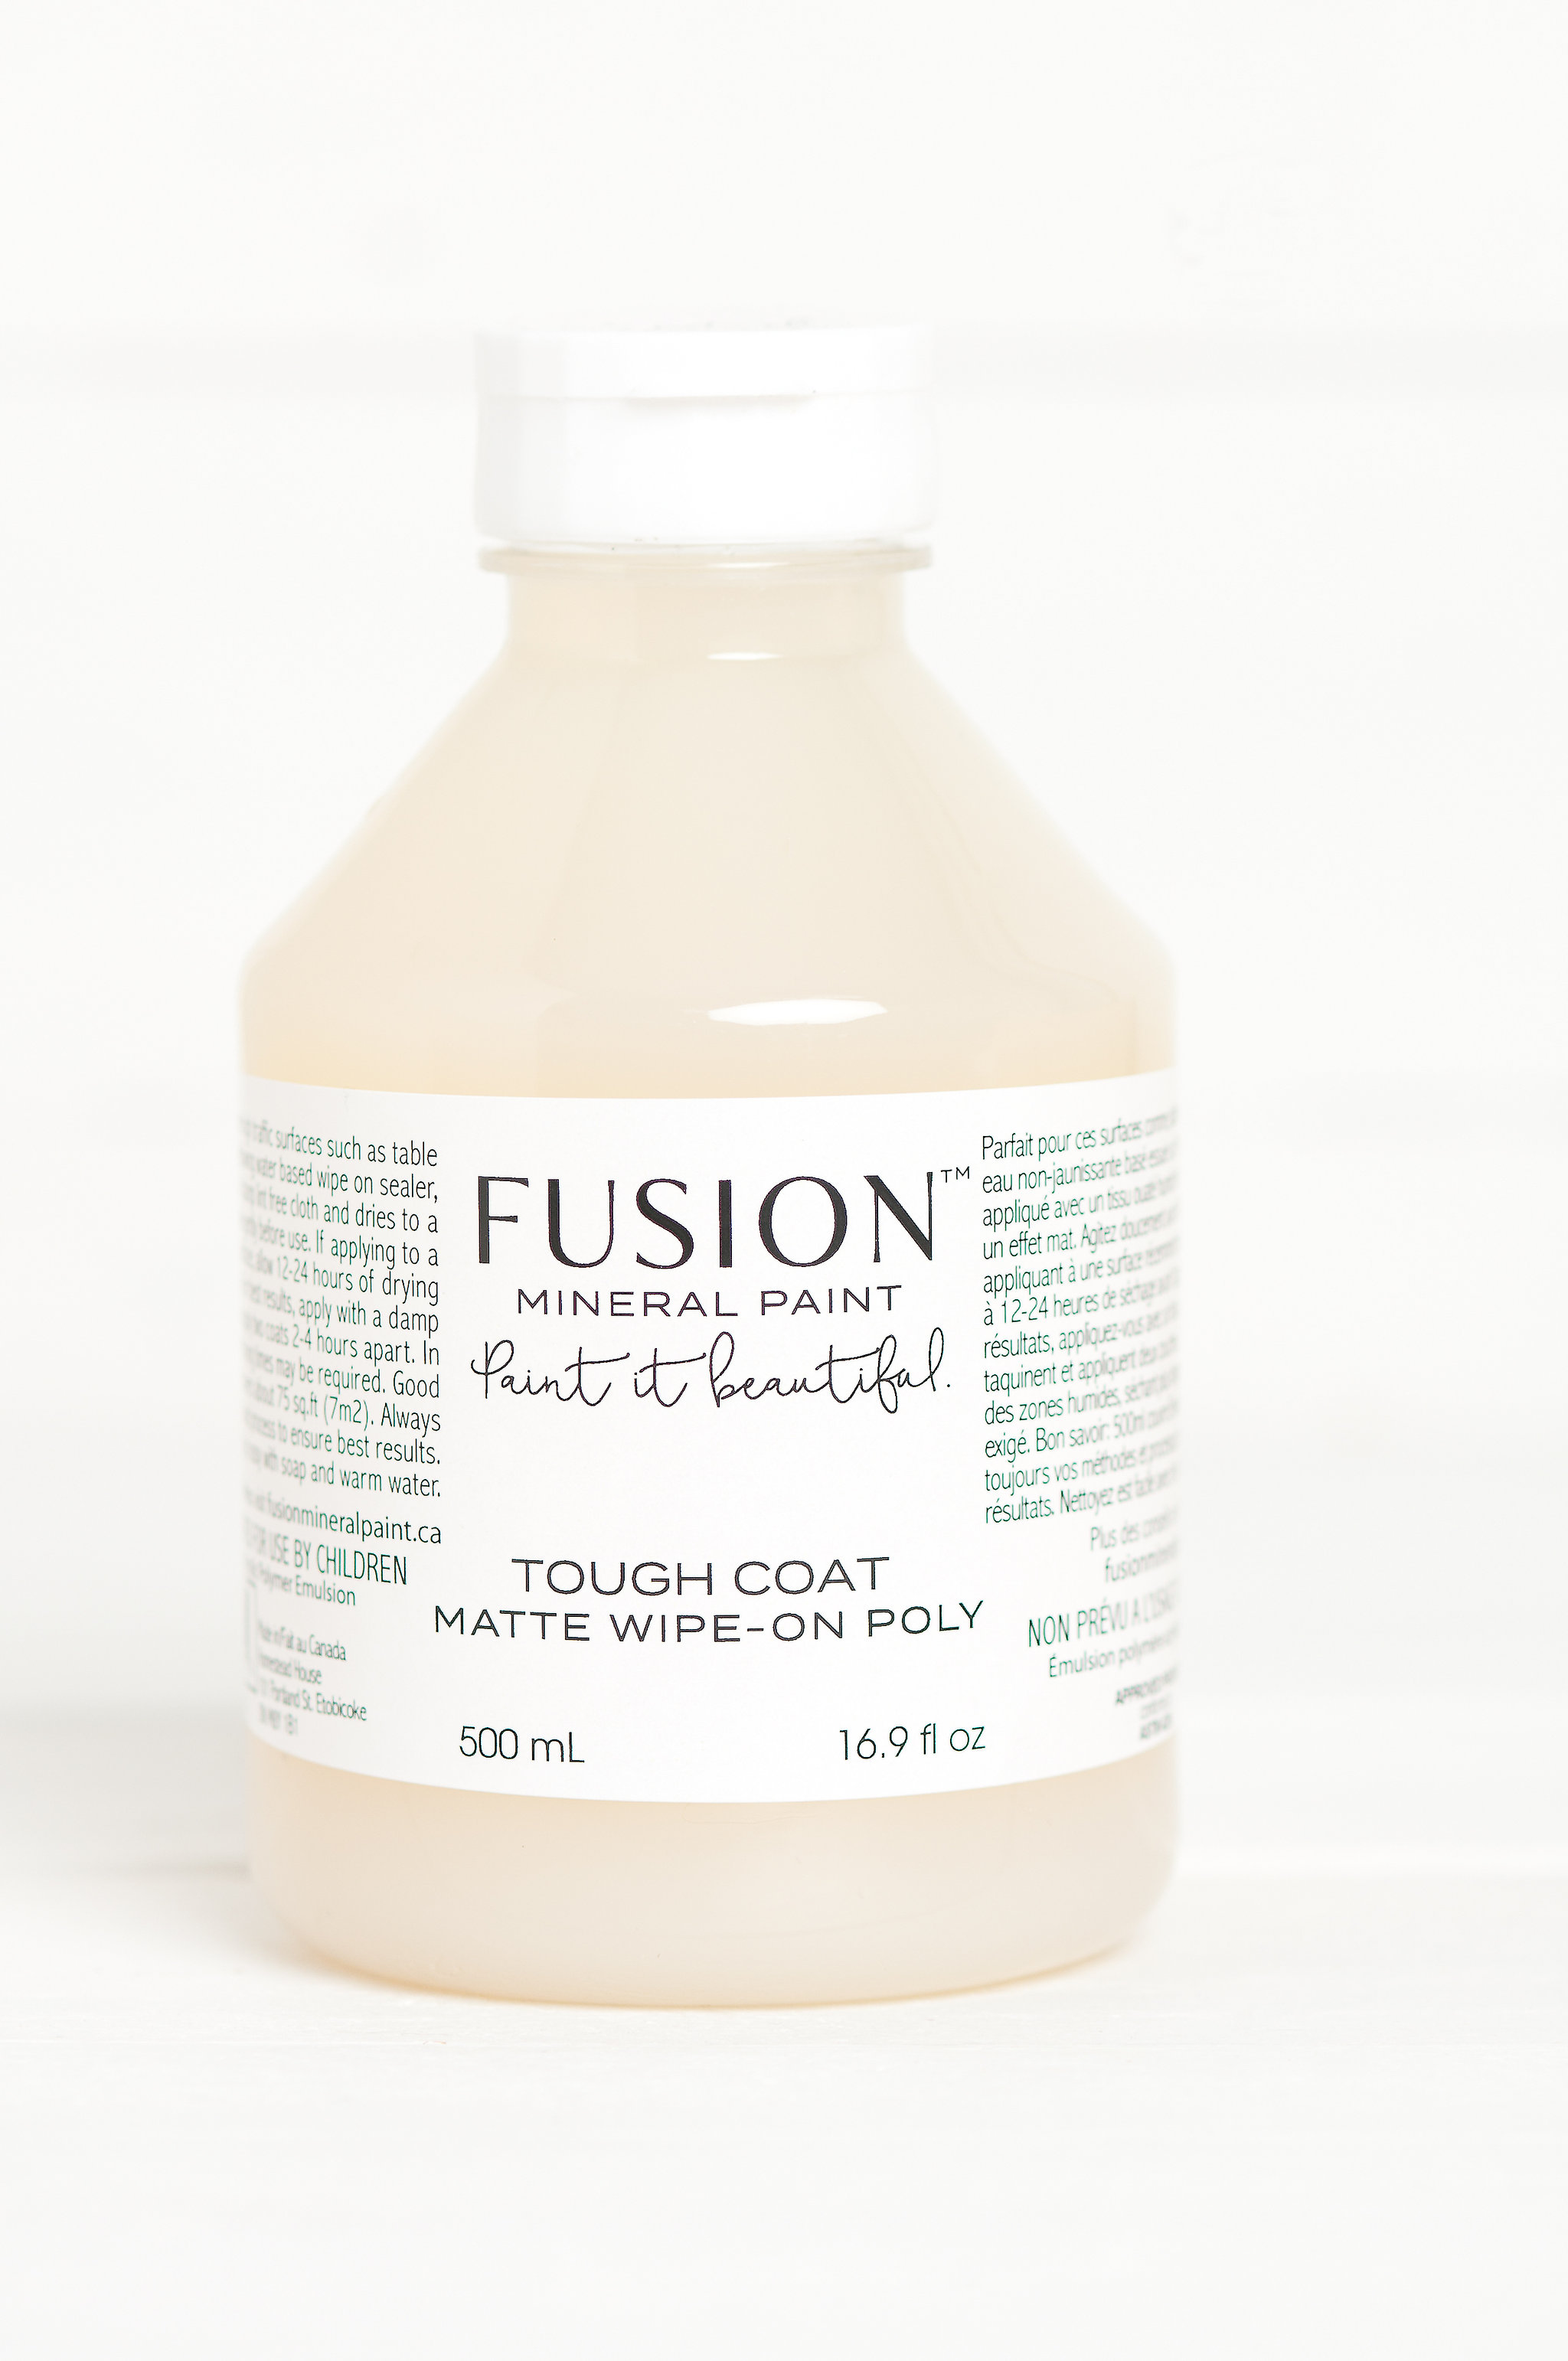 How to apply Tough Coat Fusion Mineral Paint